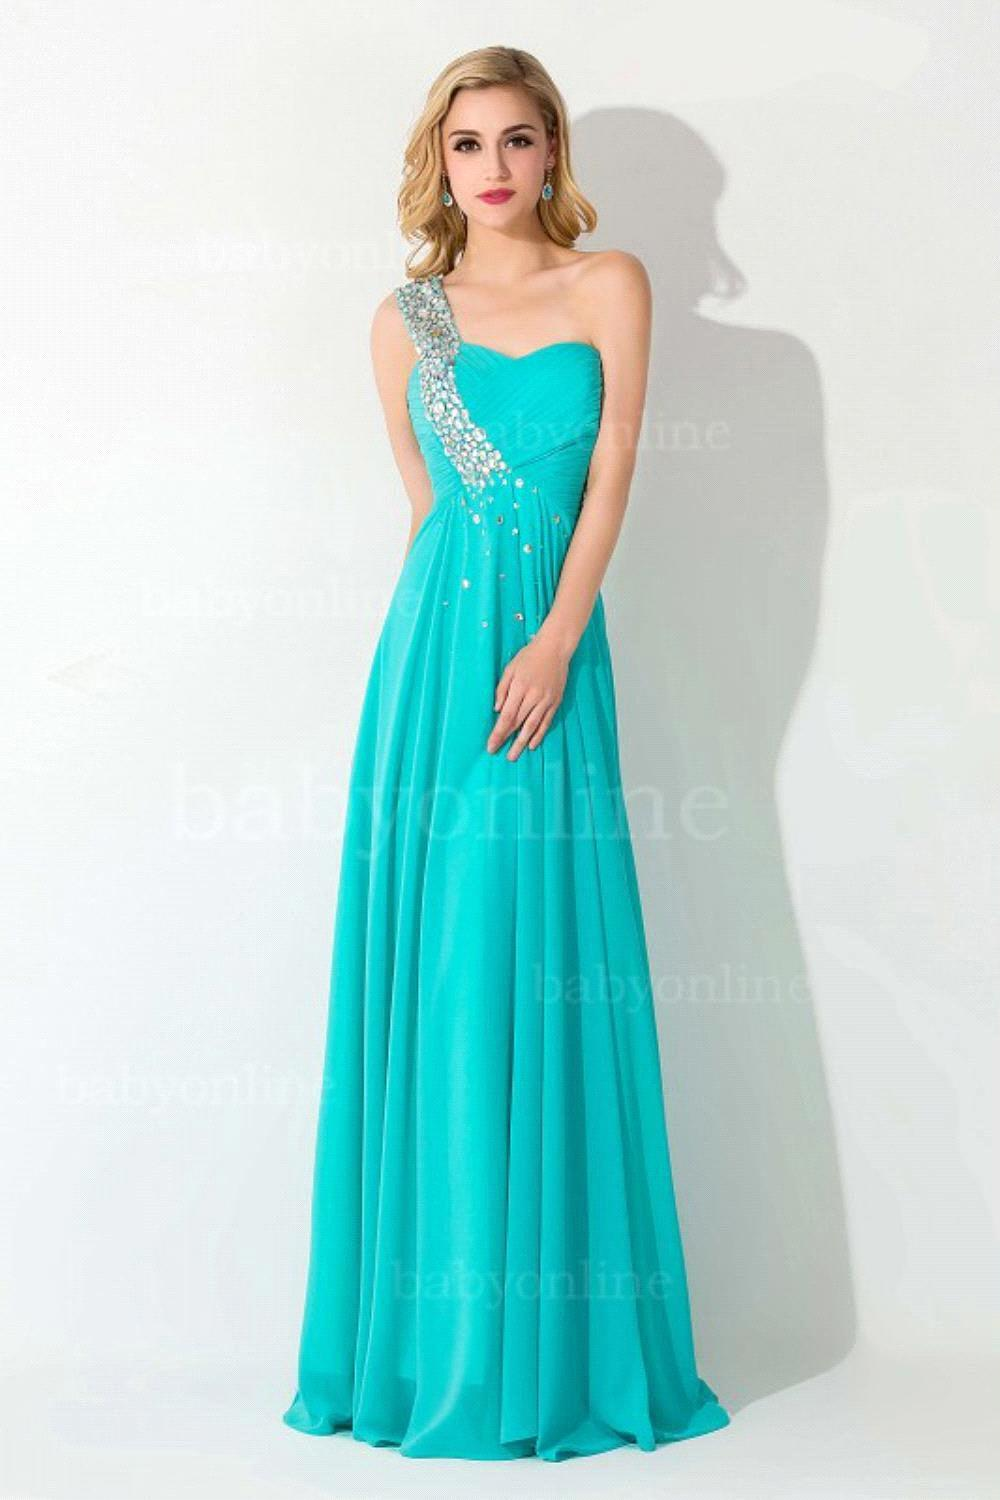 b9979ff65a52bf Turmec » long strapless prom dresses under 100 dollars